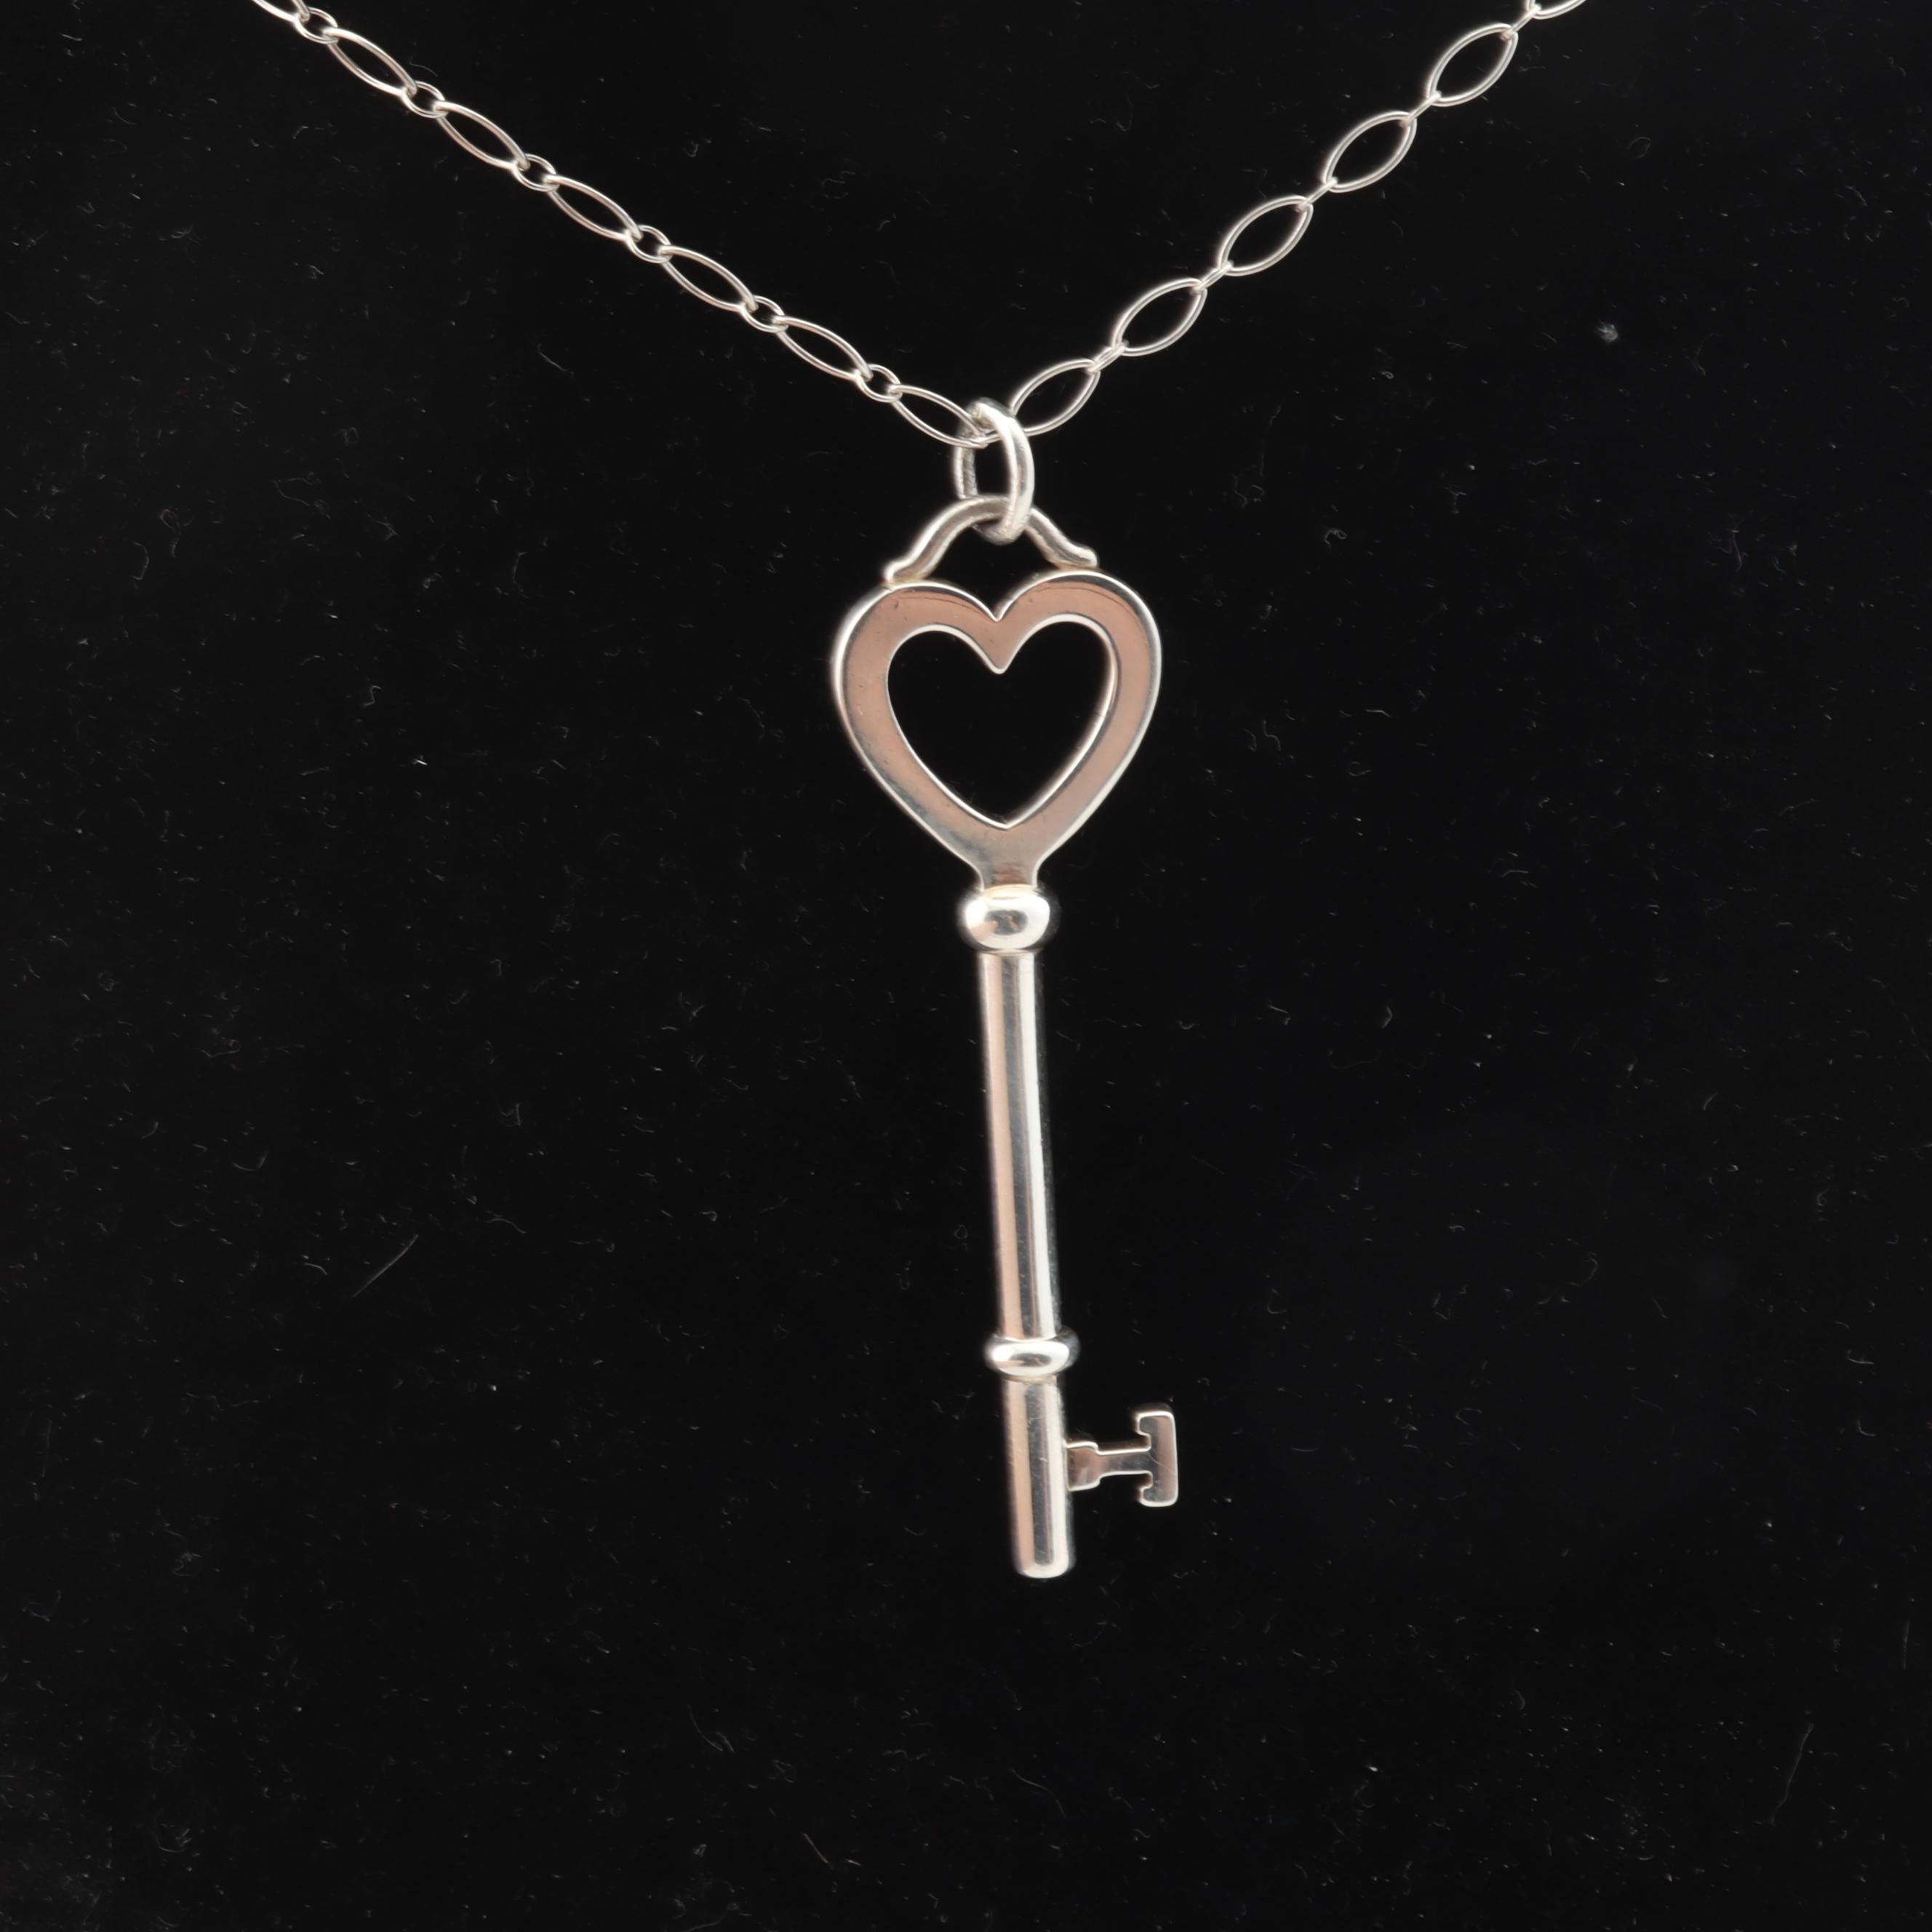 Tiffany & Co Sterling Silver Heart Key Necklace